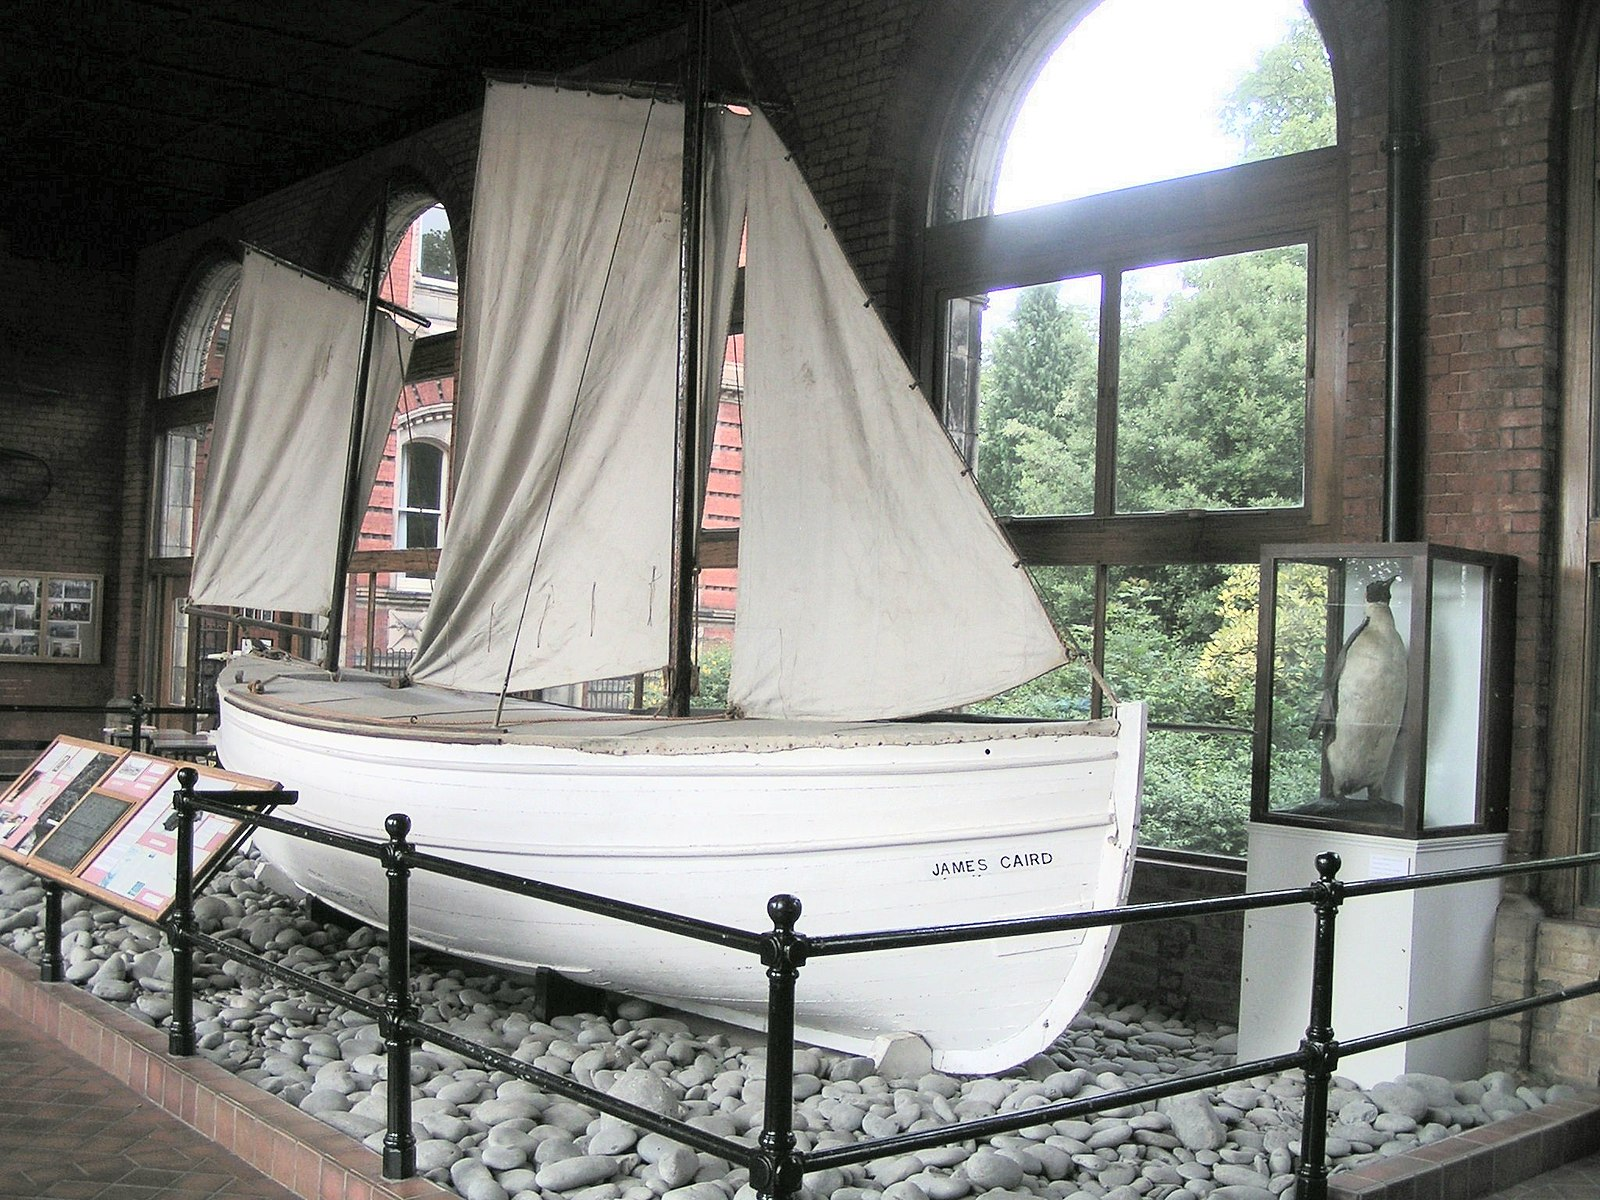 The James Caird on display at Dulwich College in South London  Image from:  https://commons.wikimedia.org/wiki/File:James_Caird_bow.jpg